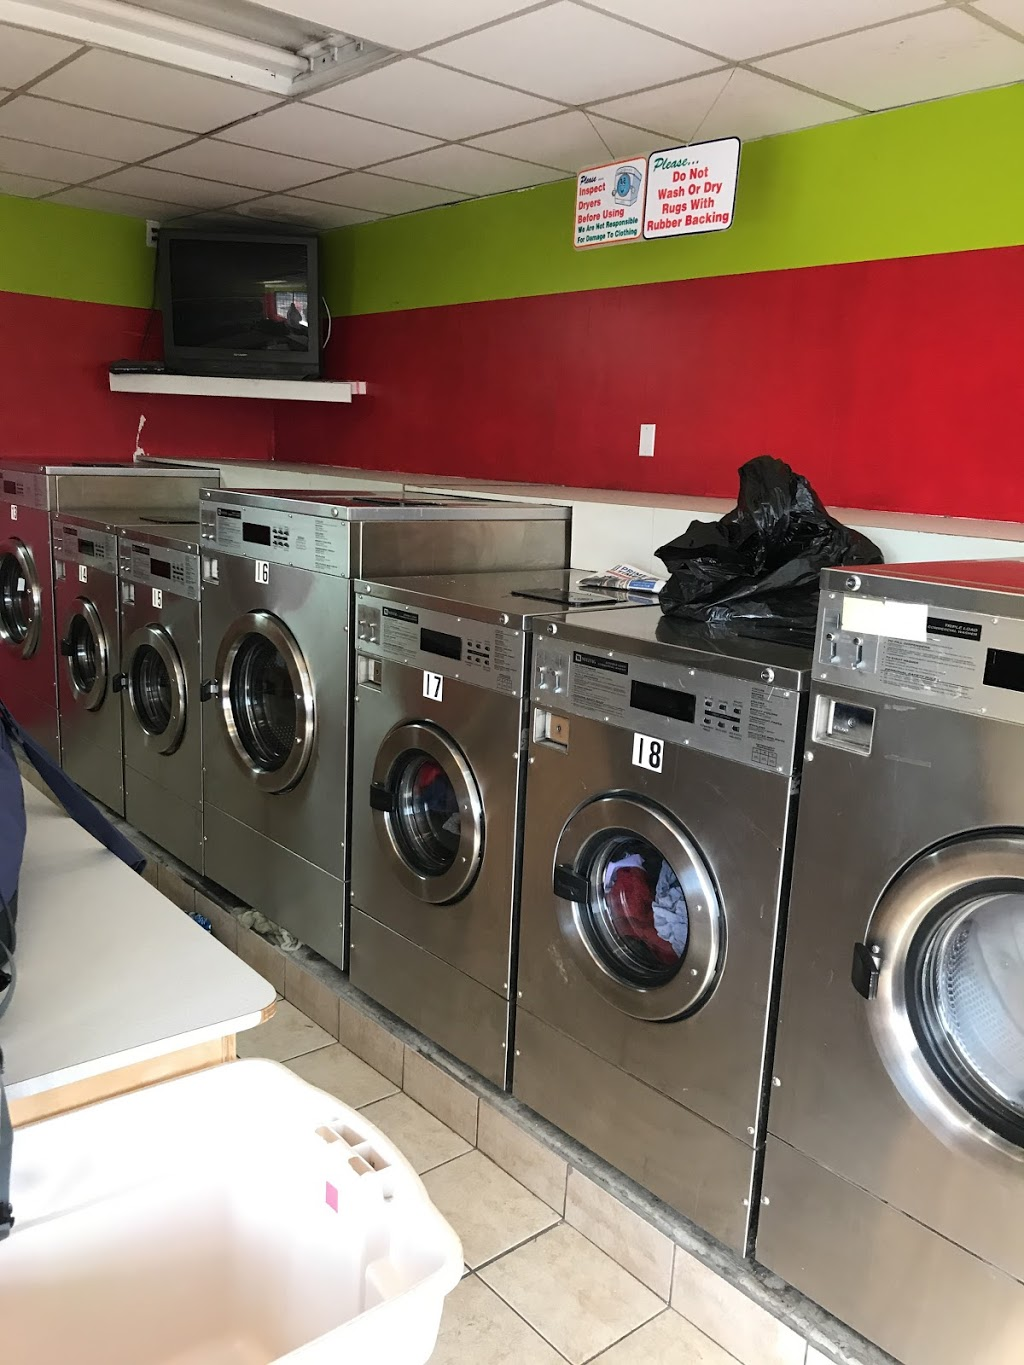 A & S Laundromat | laundry | 10610 105 St NW, Edmonton, AB T5H 2W9, Canada | 7804200555 OR +1 780-420-0555